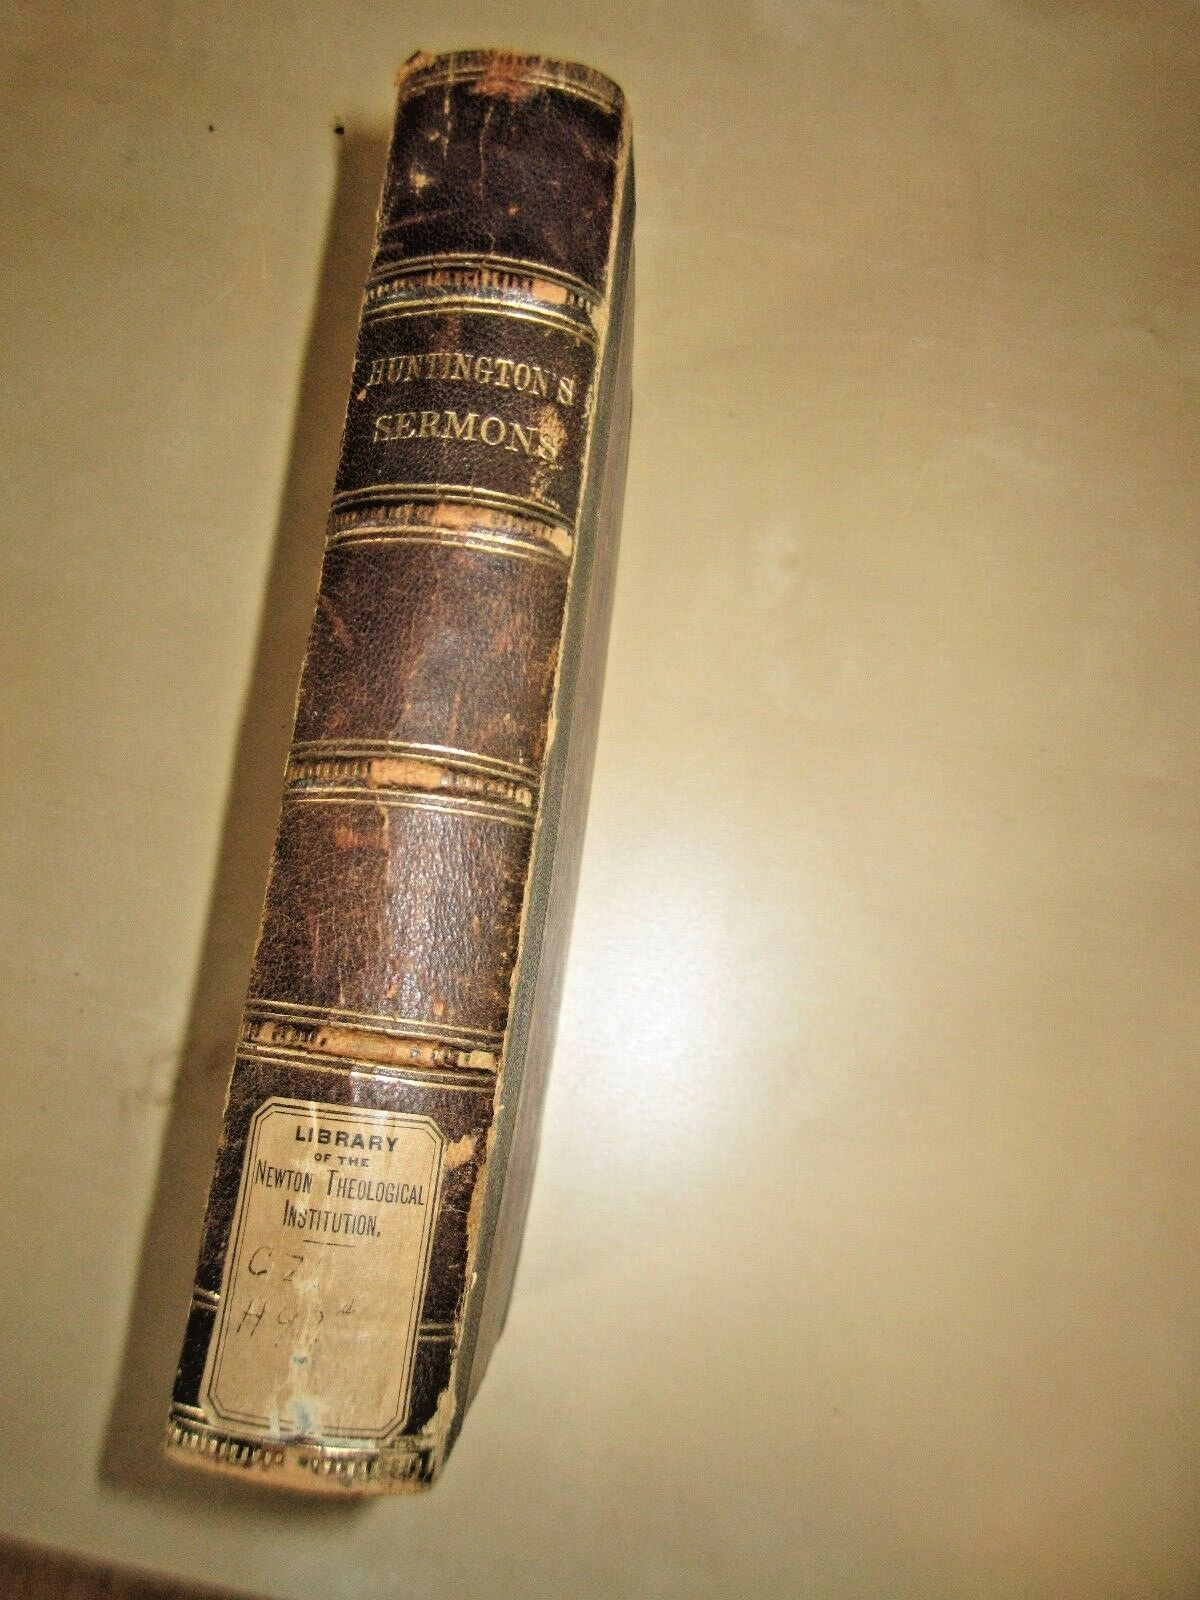 1856 sermons for the people by frederic huntington antique